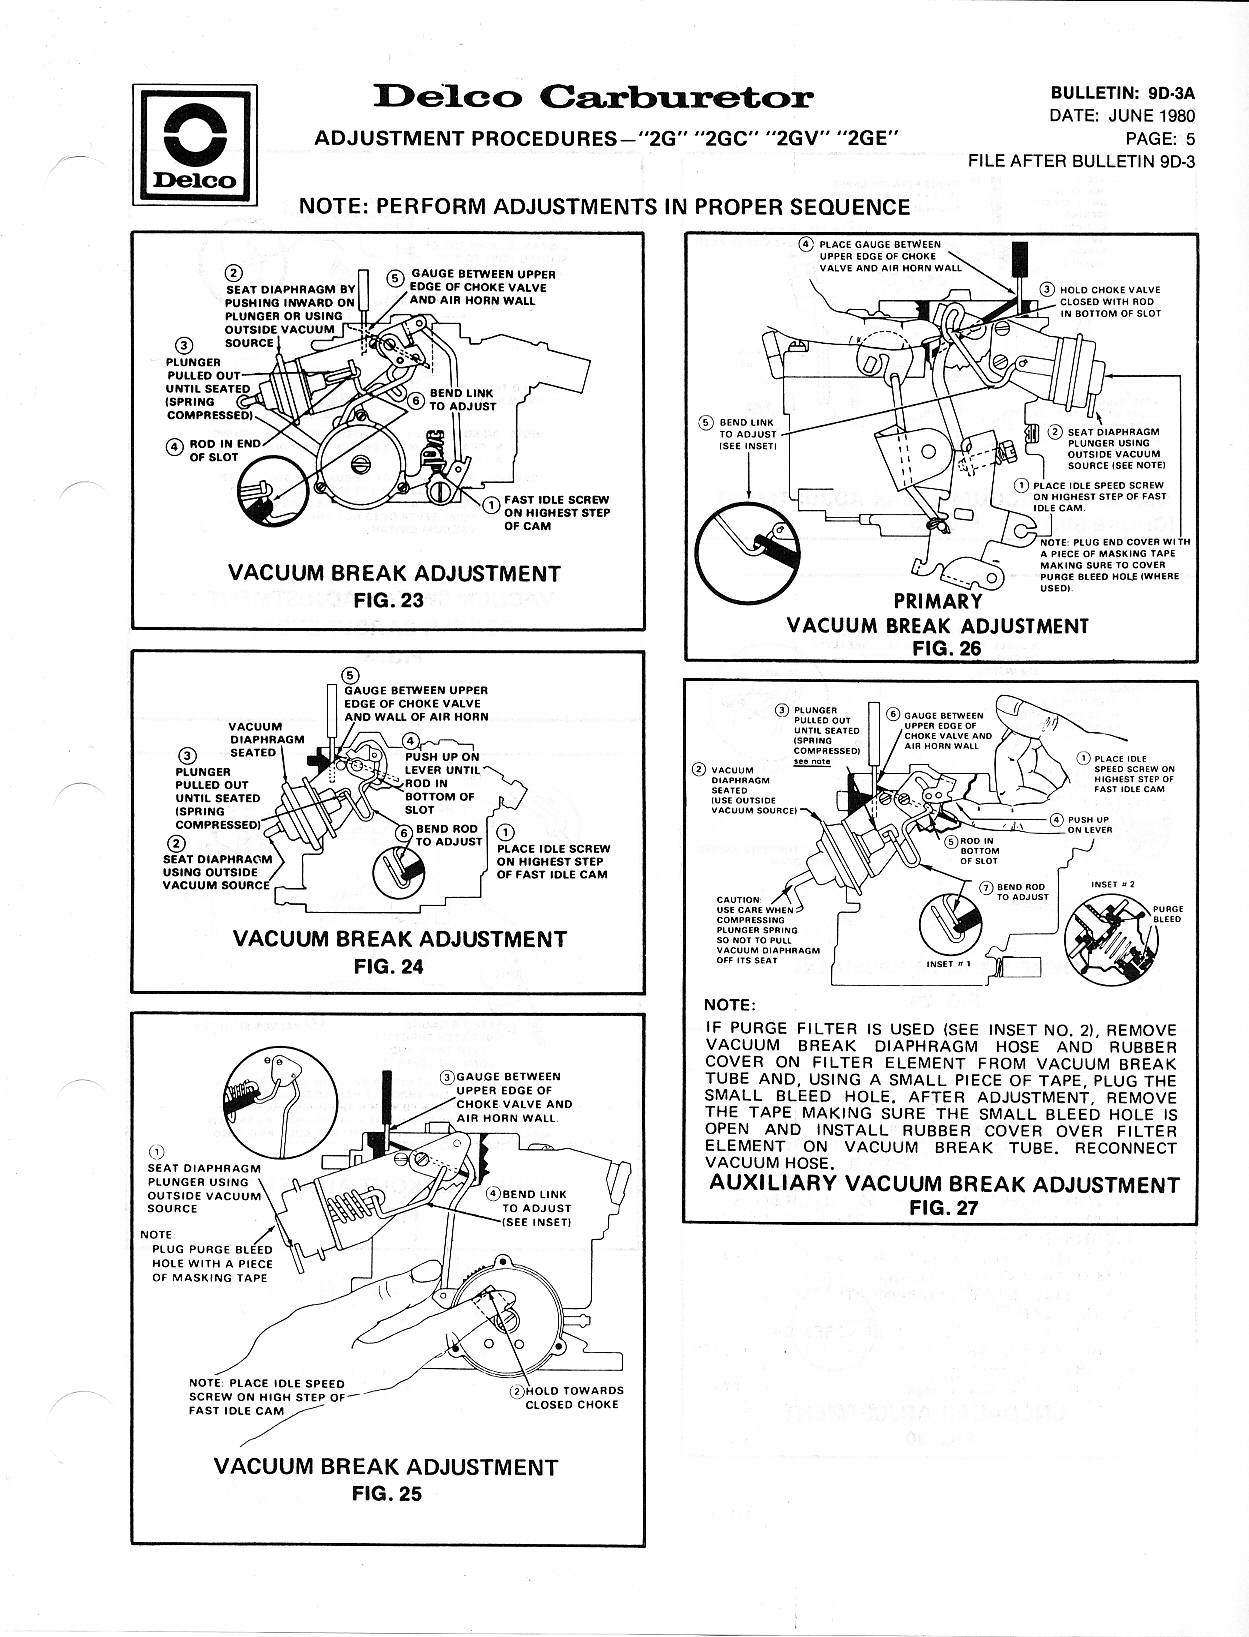 Rochester 2 Jet Carburetor Manual The Old Car Manual Project